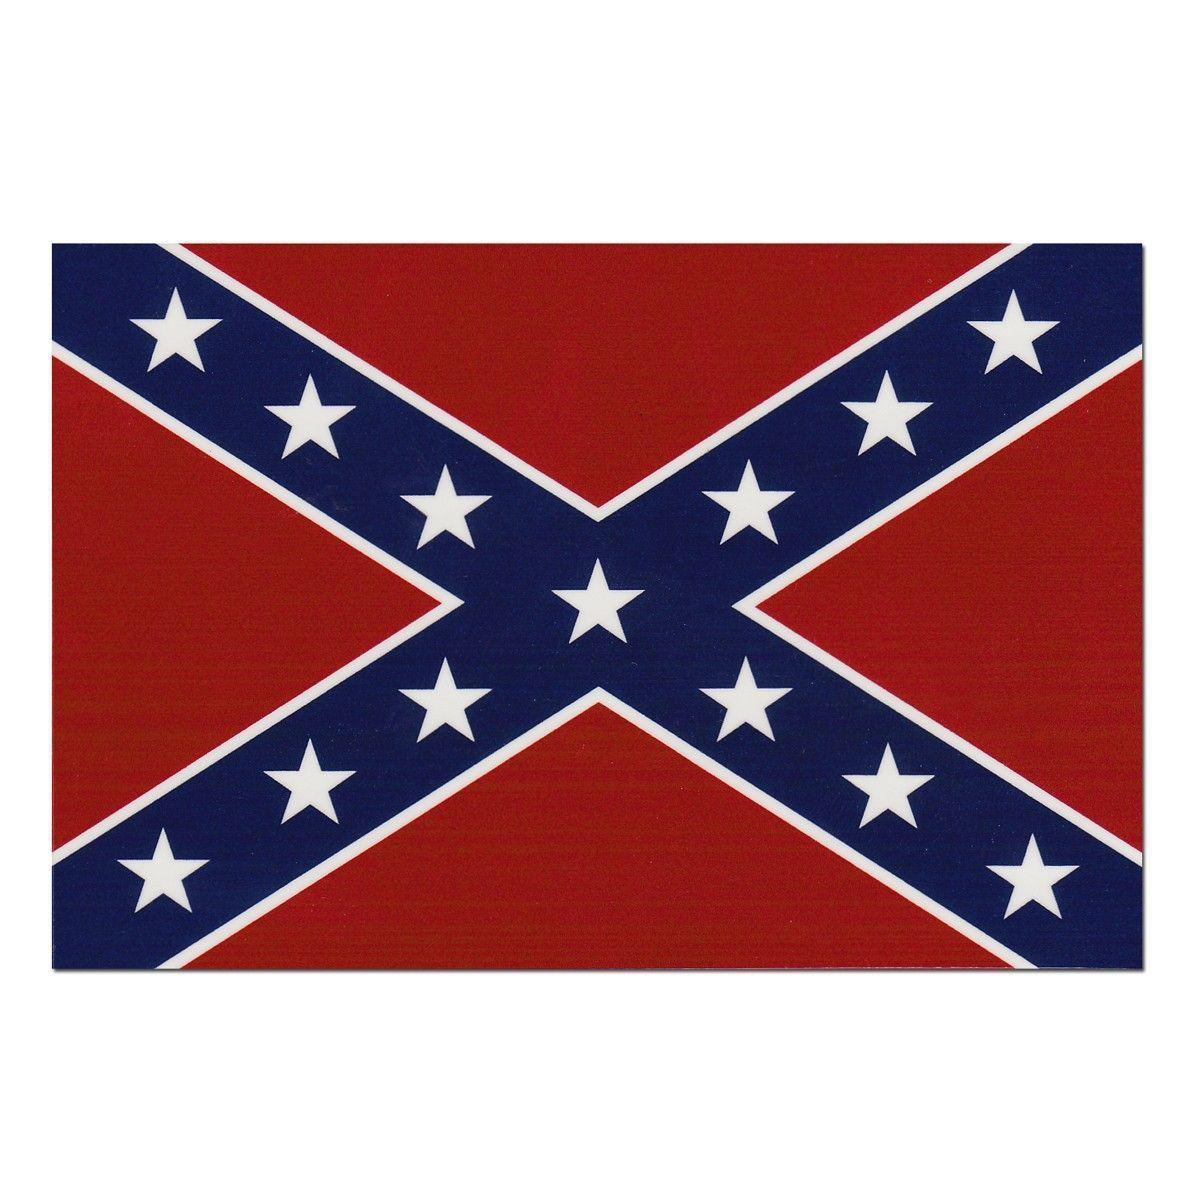 Wallpapers For > Confederate Flag Eagle Wallpaper